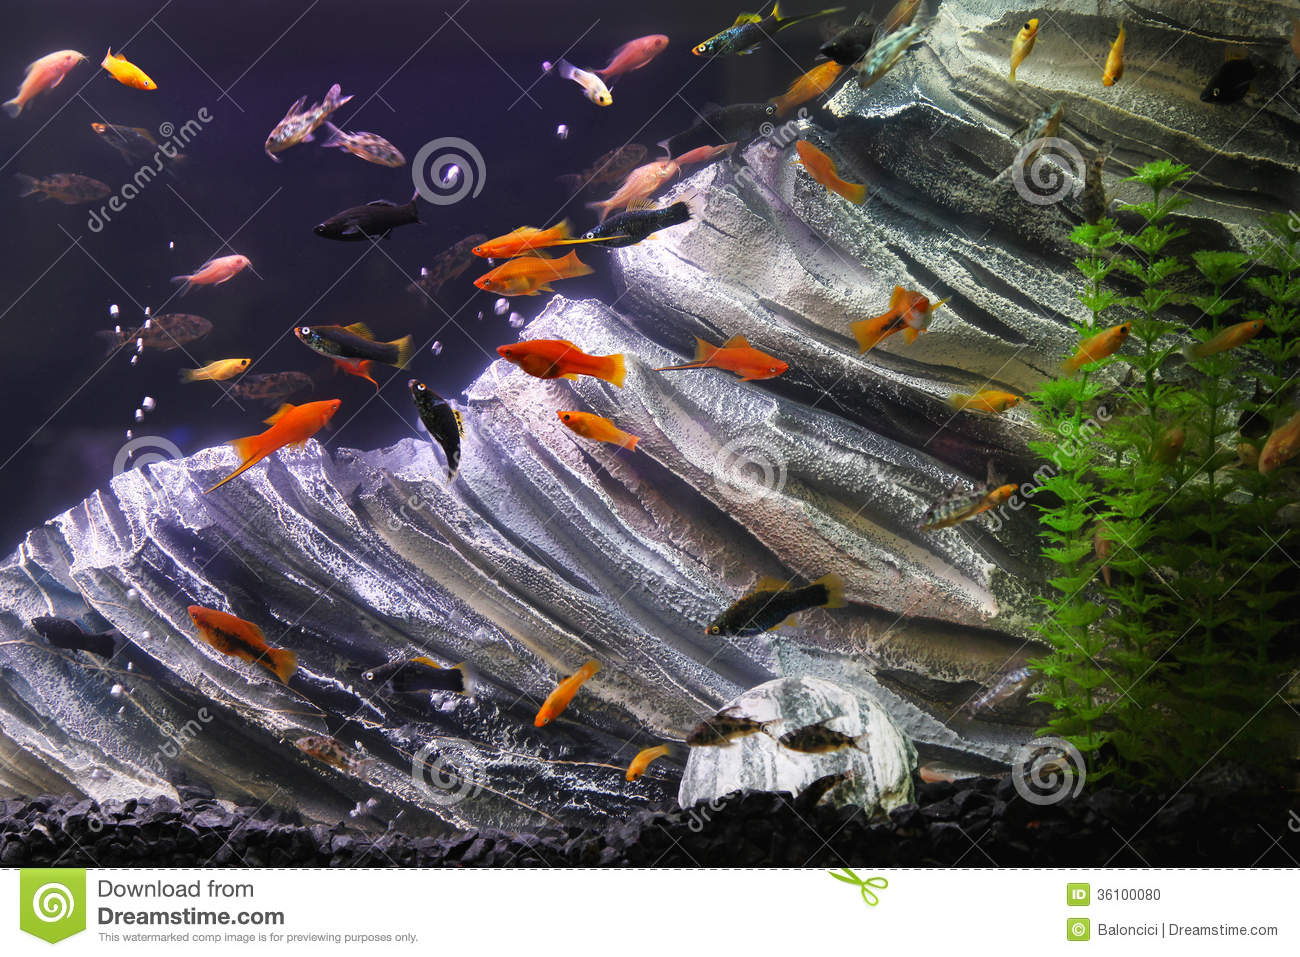 Aquarium fish tank download - Fish Tank